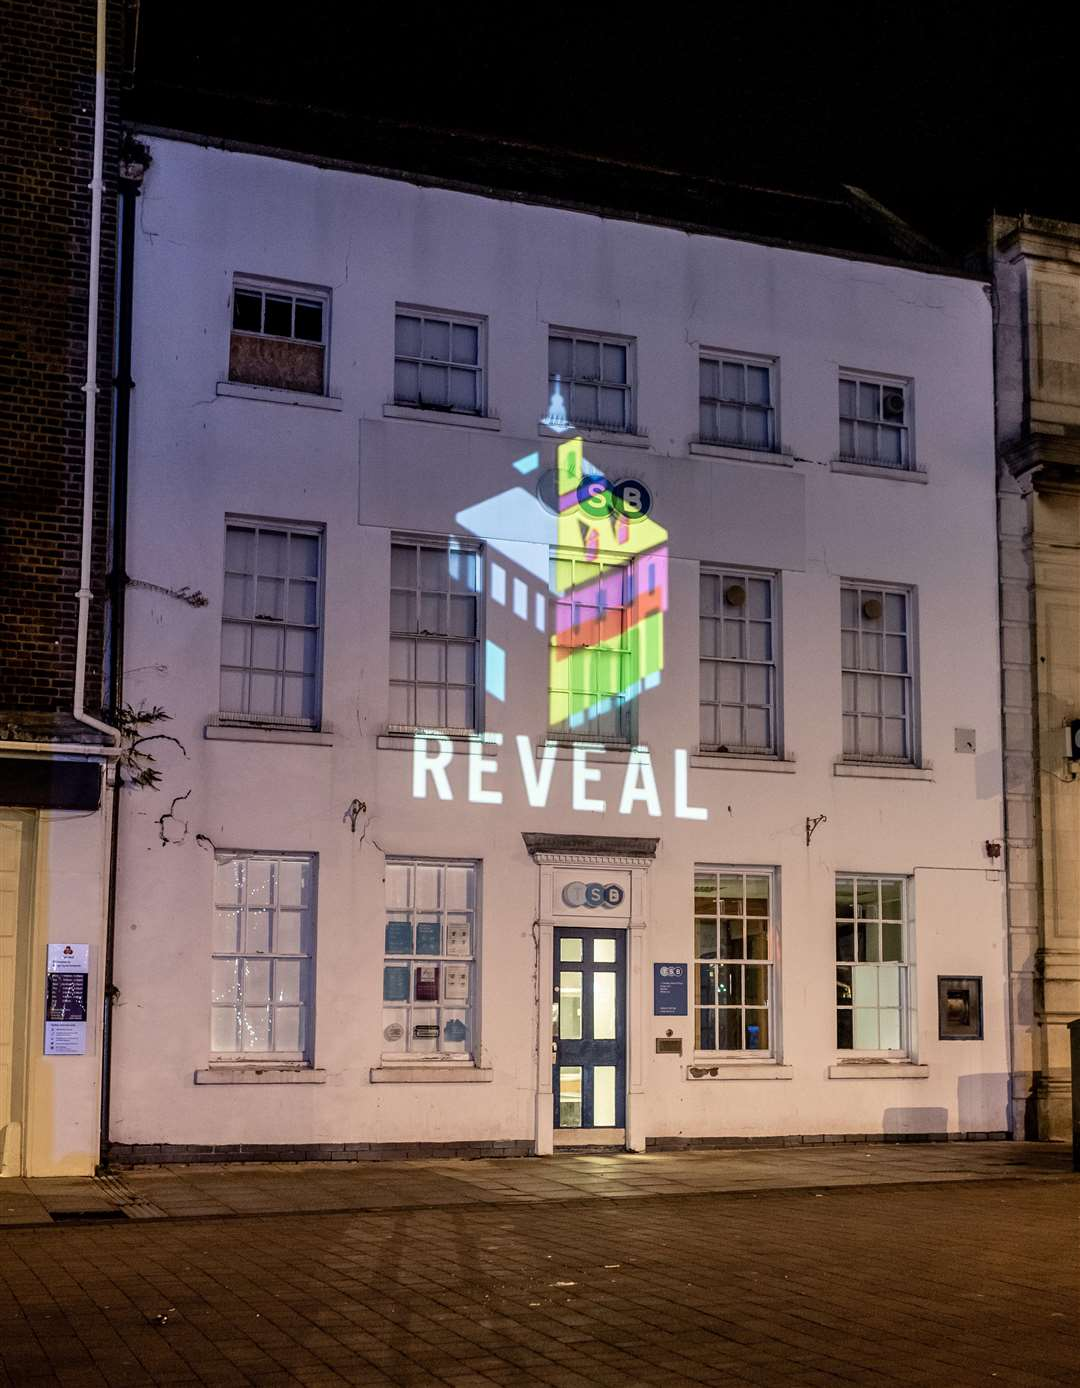 Scenes from the 2018 King's Lynn Christmas lights switch on, with the launch of REVEAL.